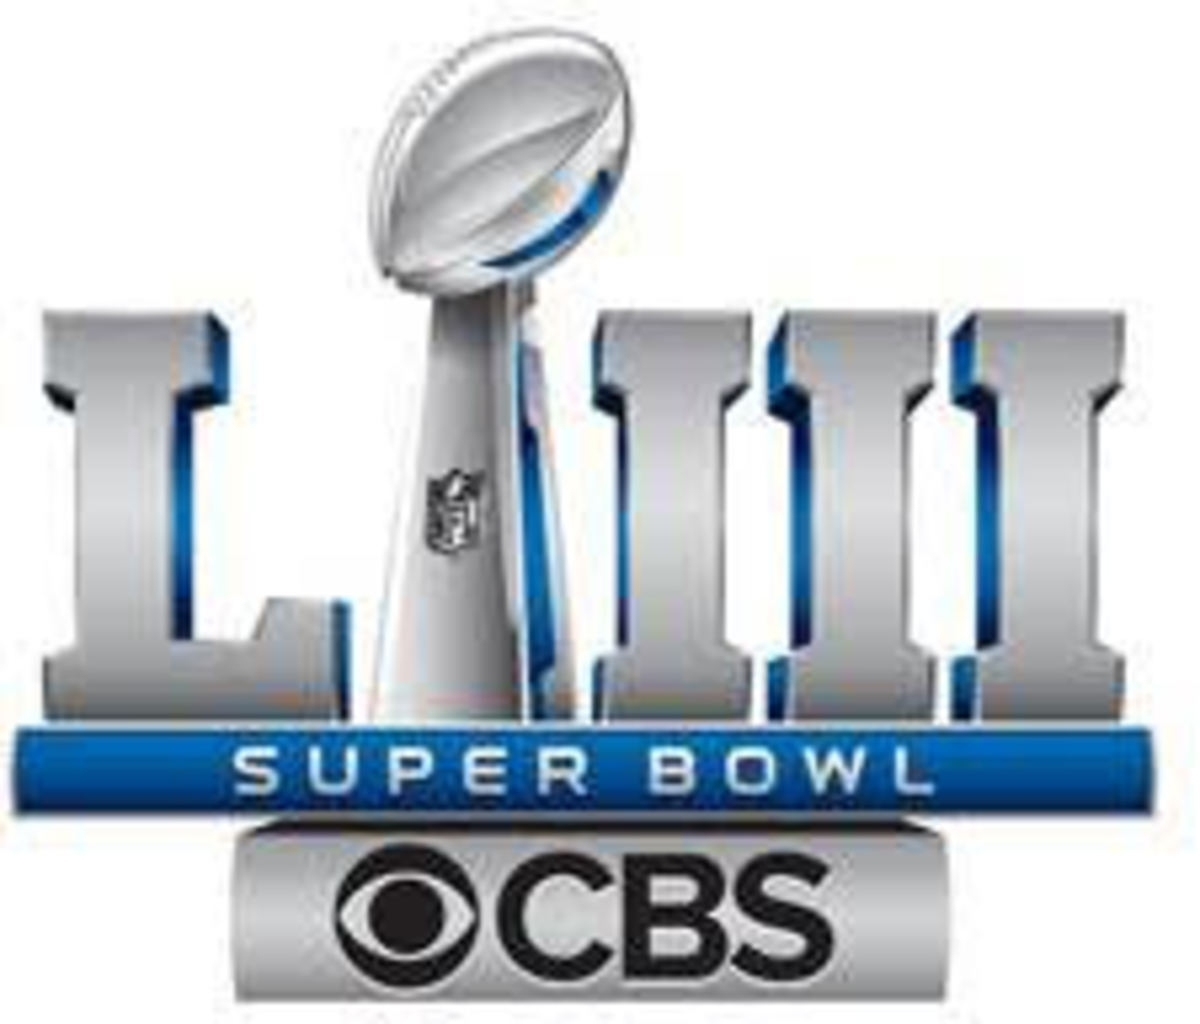 Cbs To Stream Super Bowl On All Access App, Mobile in Cbs All Access Super Bowl